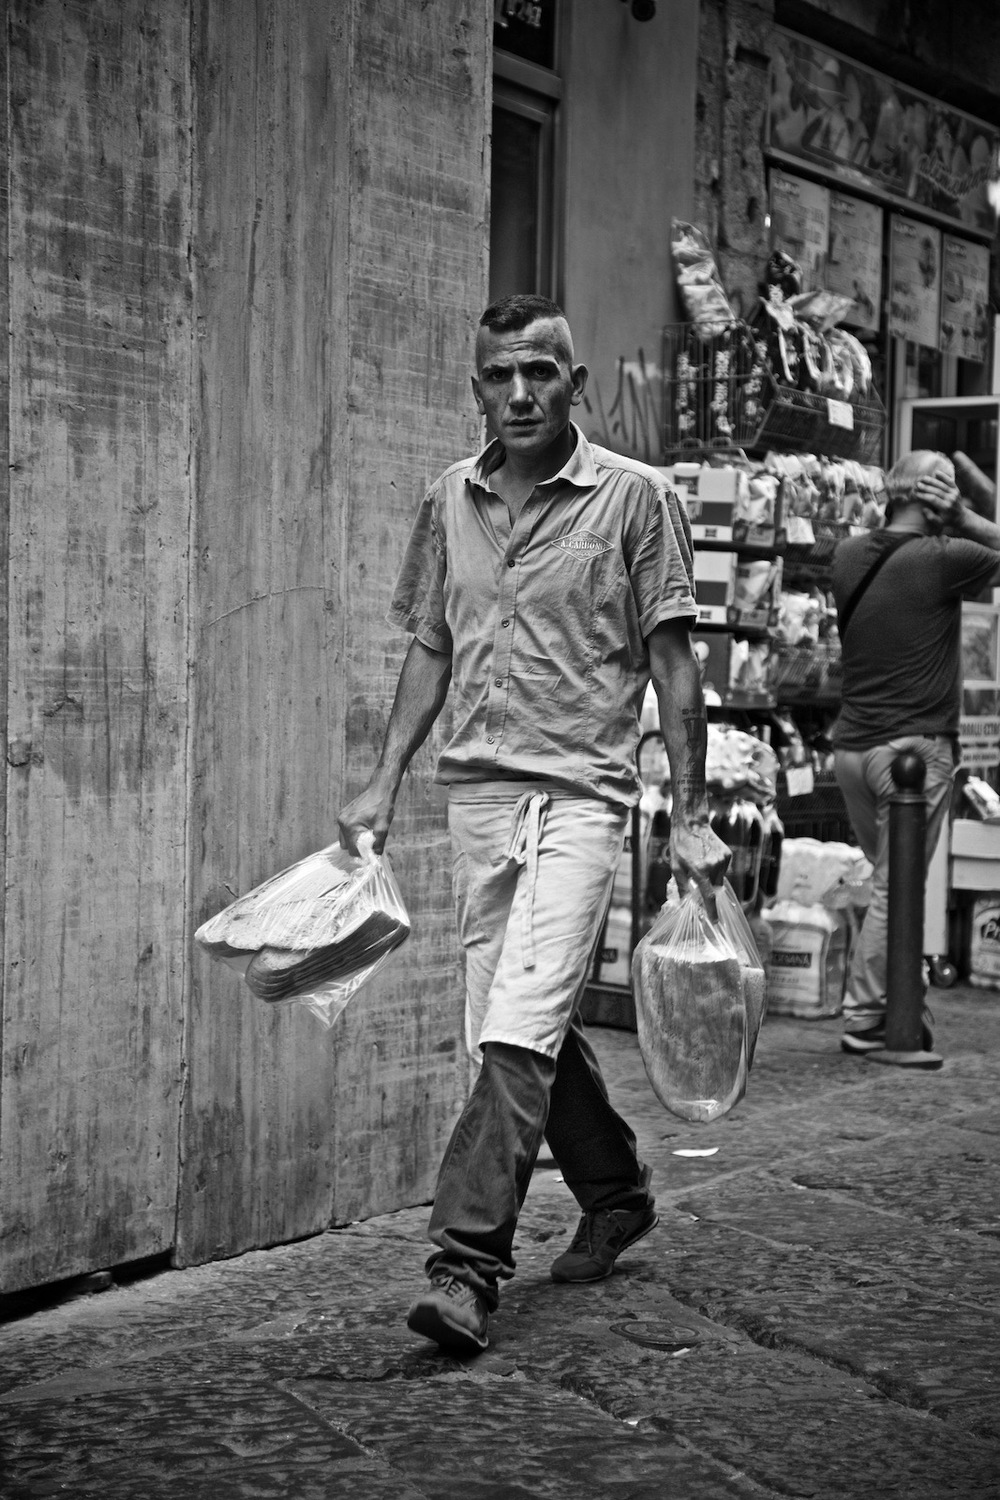 faces-of-napoli-denis-bosnic-photography-naples-bw-spaccanapoli-summer-17.jpg